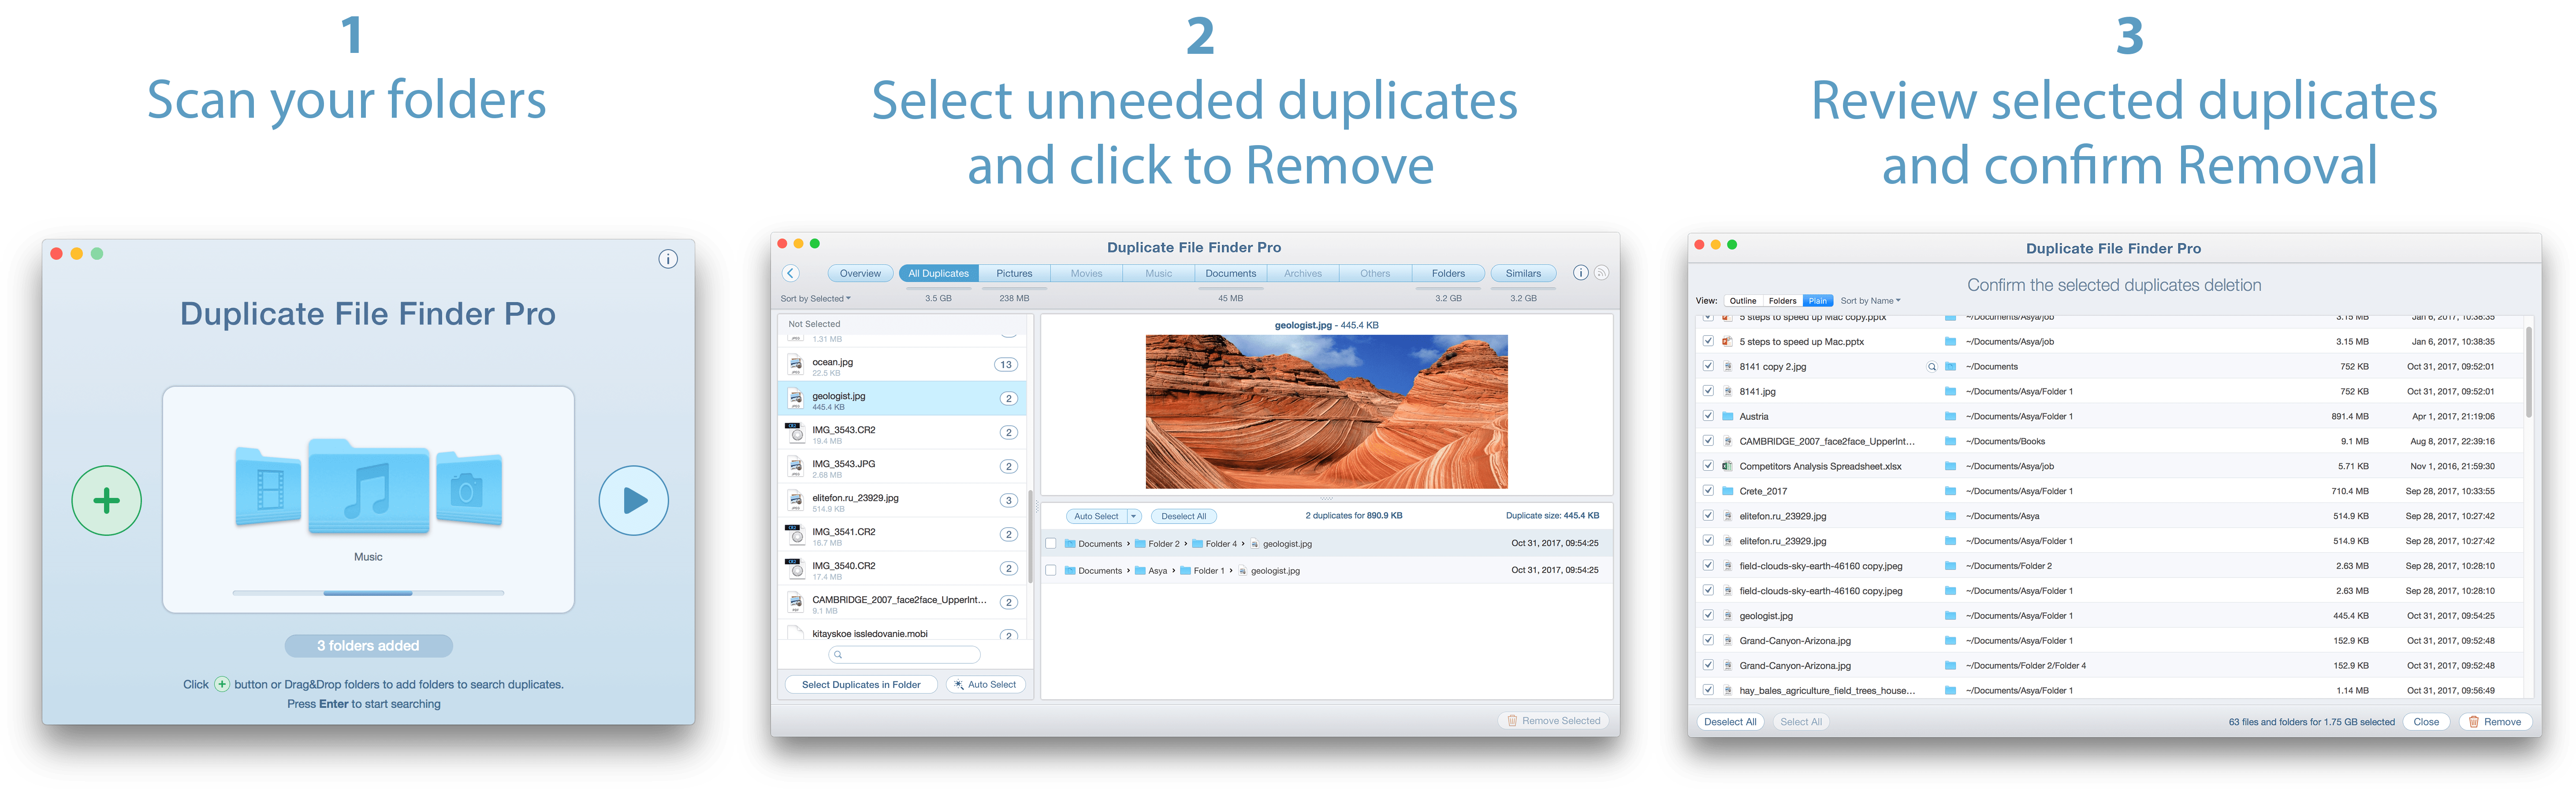 Duplicate File Finder - Question about Duplicates Removal